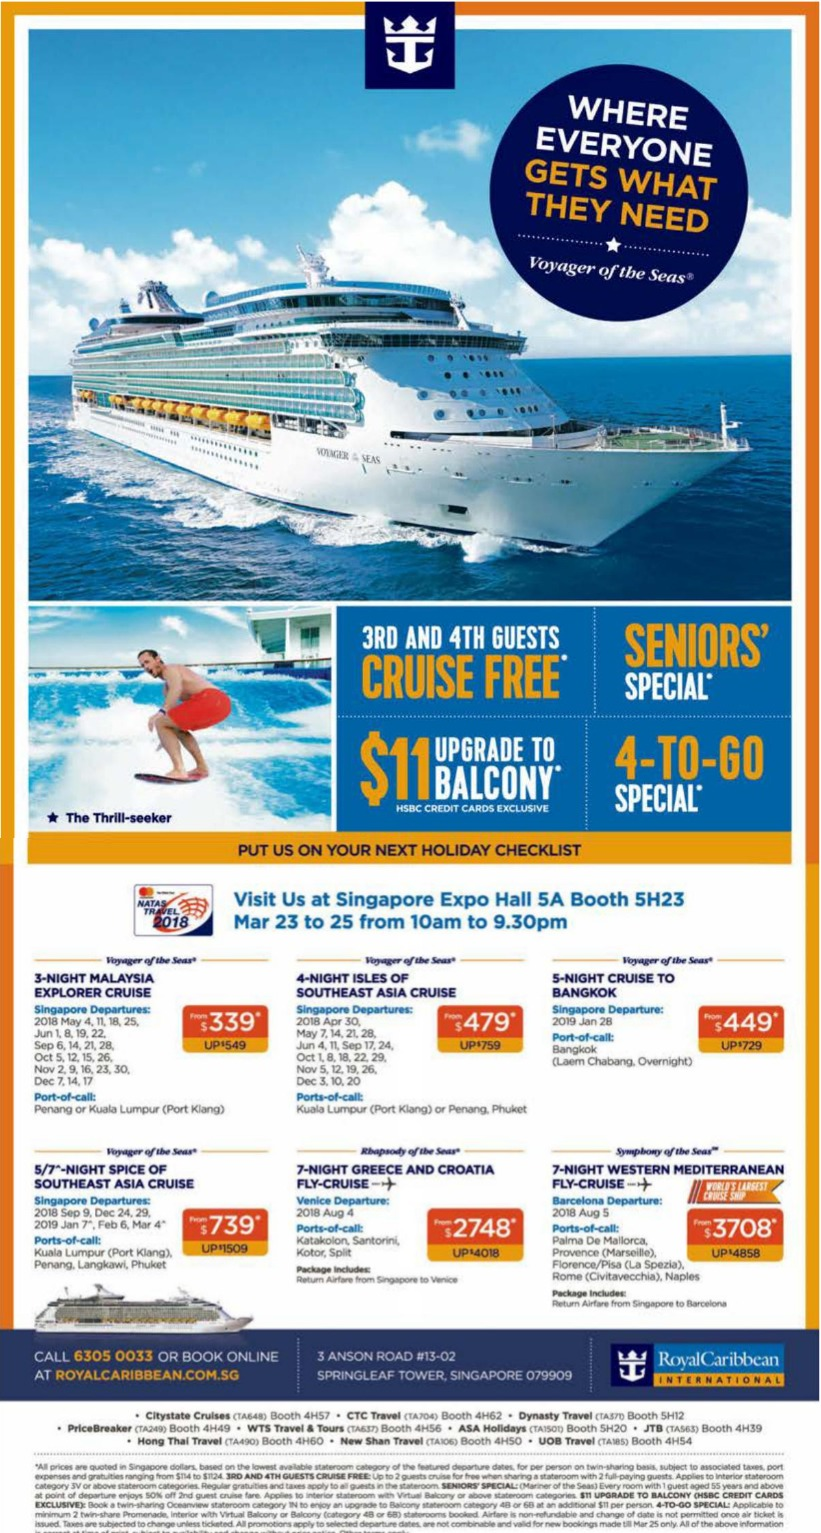 Royal Caribbean Cruises Buy 2 Get 2 Free 3rd Amp 4th Guests Cruise For Free When You Book From